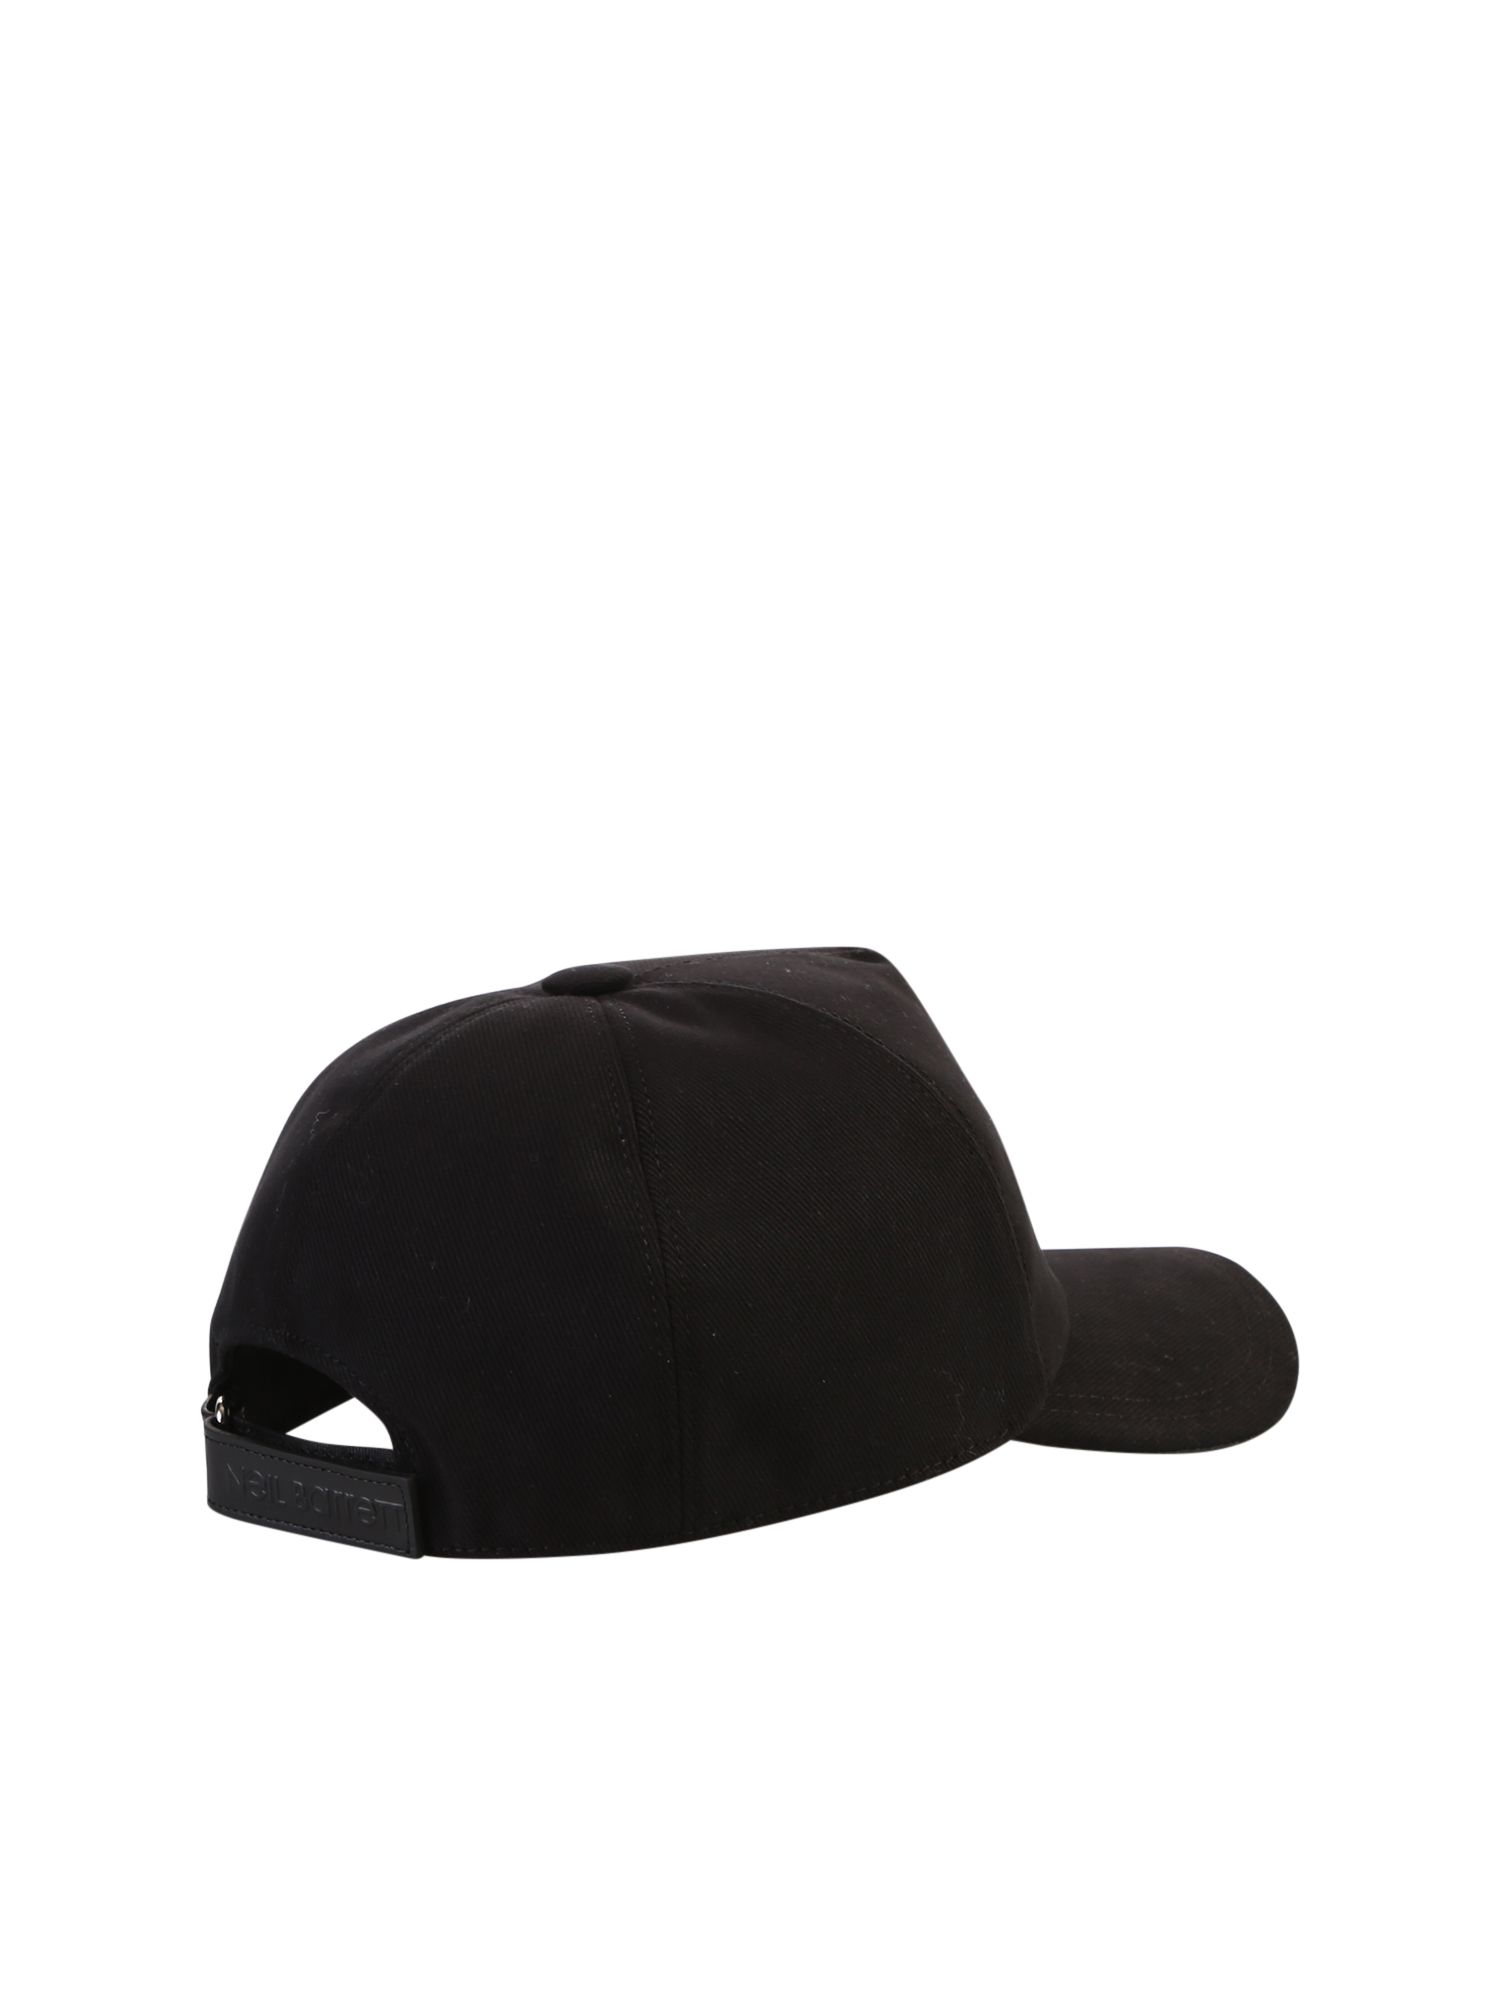 4457ee63783 Neil Barrett Neil Barrett Printed Baseball Hat - Black - 10815110 ...